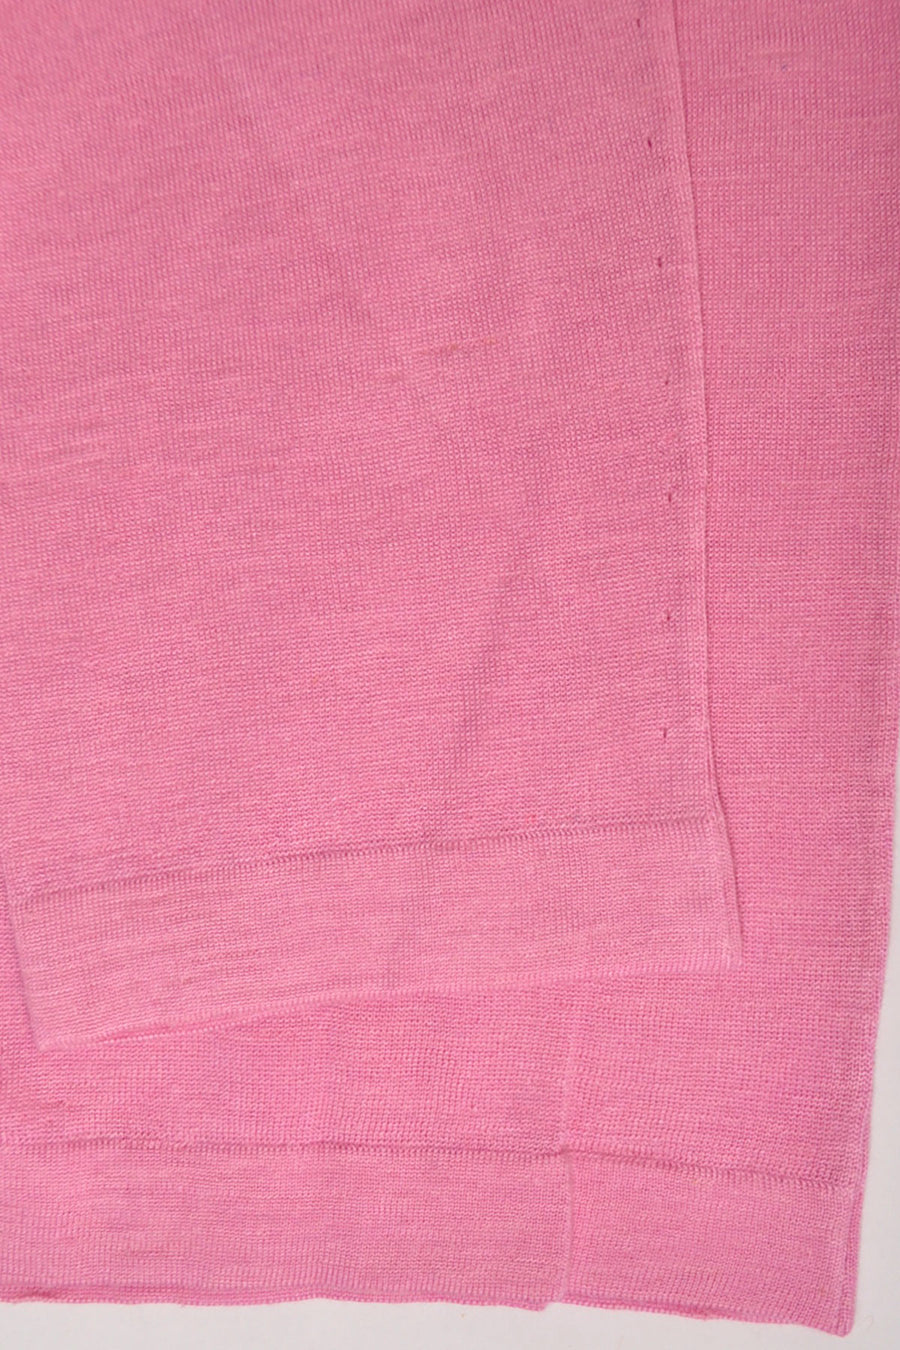 Kiton Sweater Linen Silk Light Pink Crew Neck